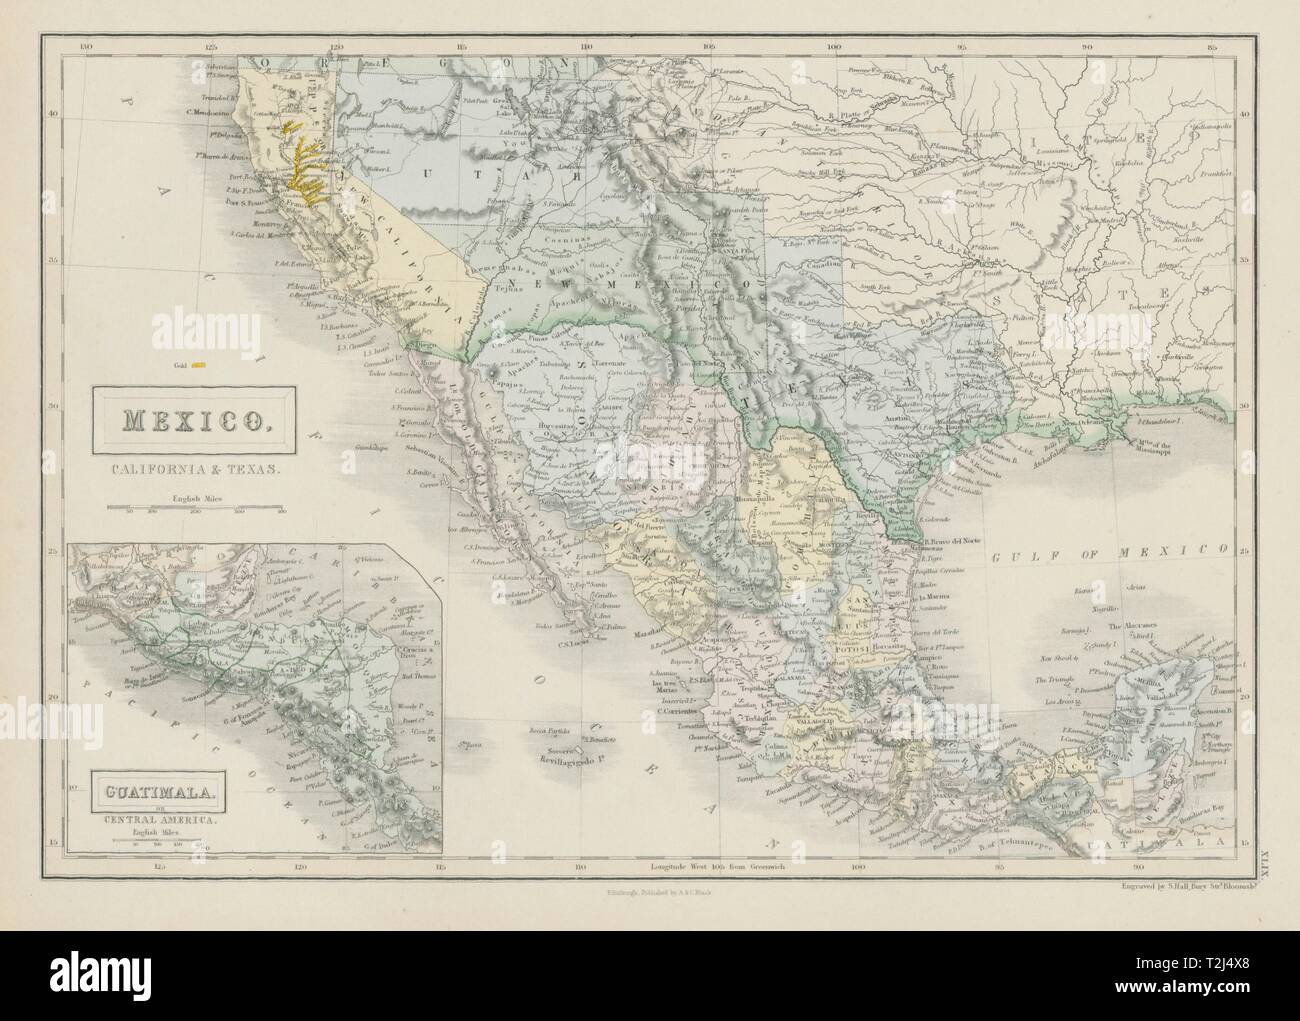 Map Of Texas Districts.Mexico California Texas Ca Gold Rush Districts Utah Nm